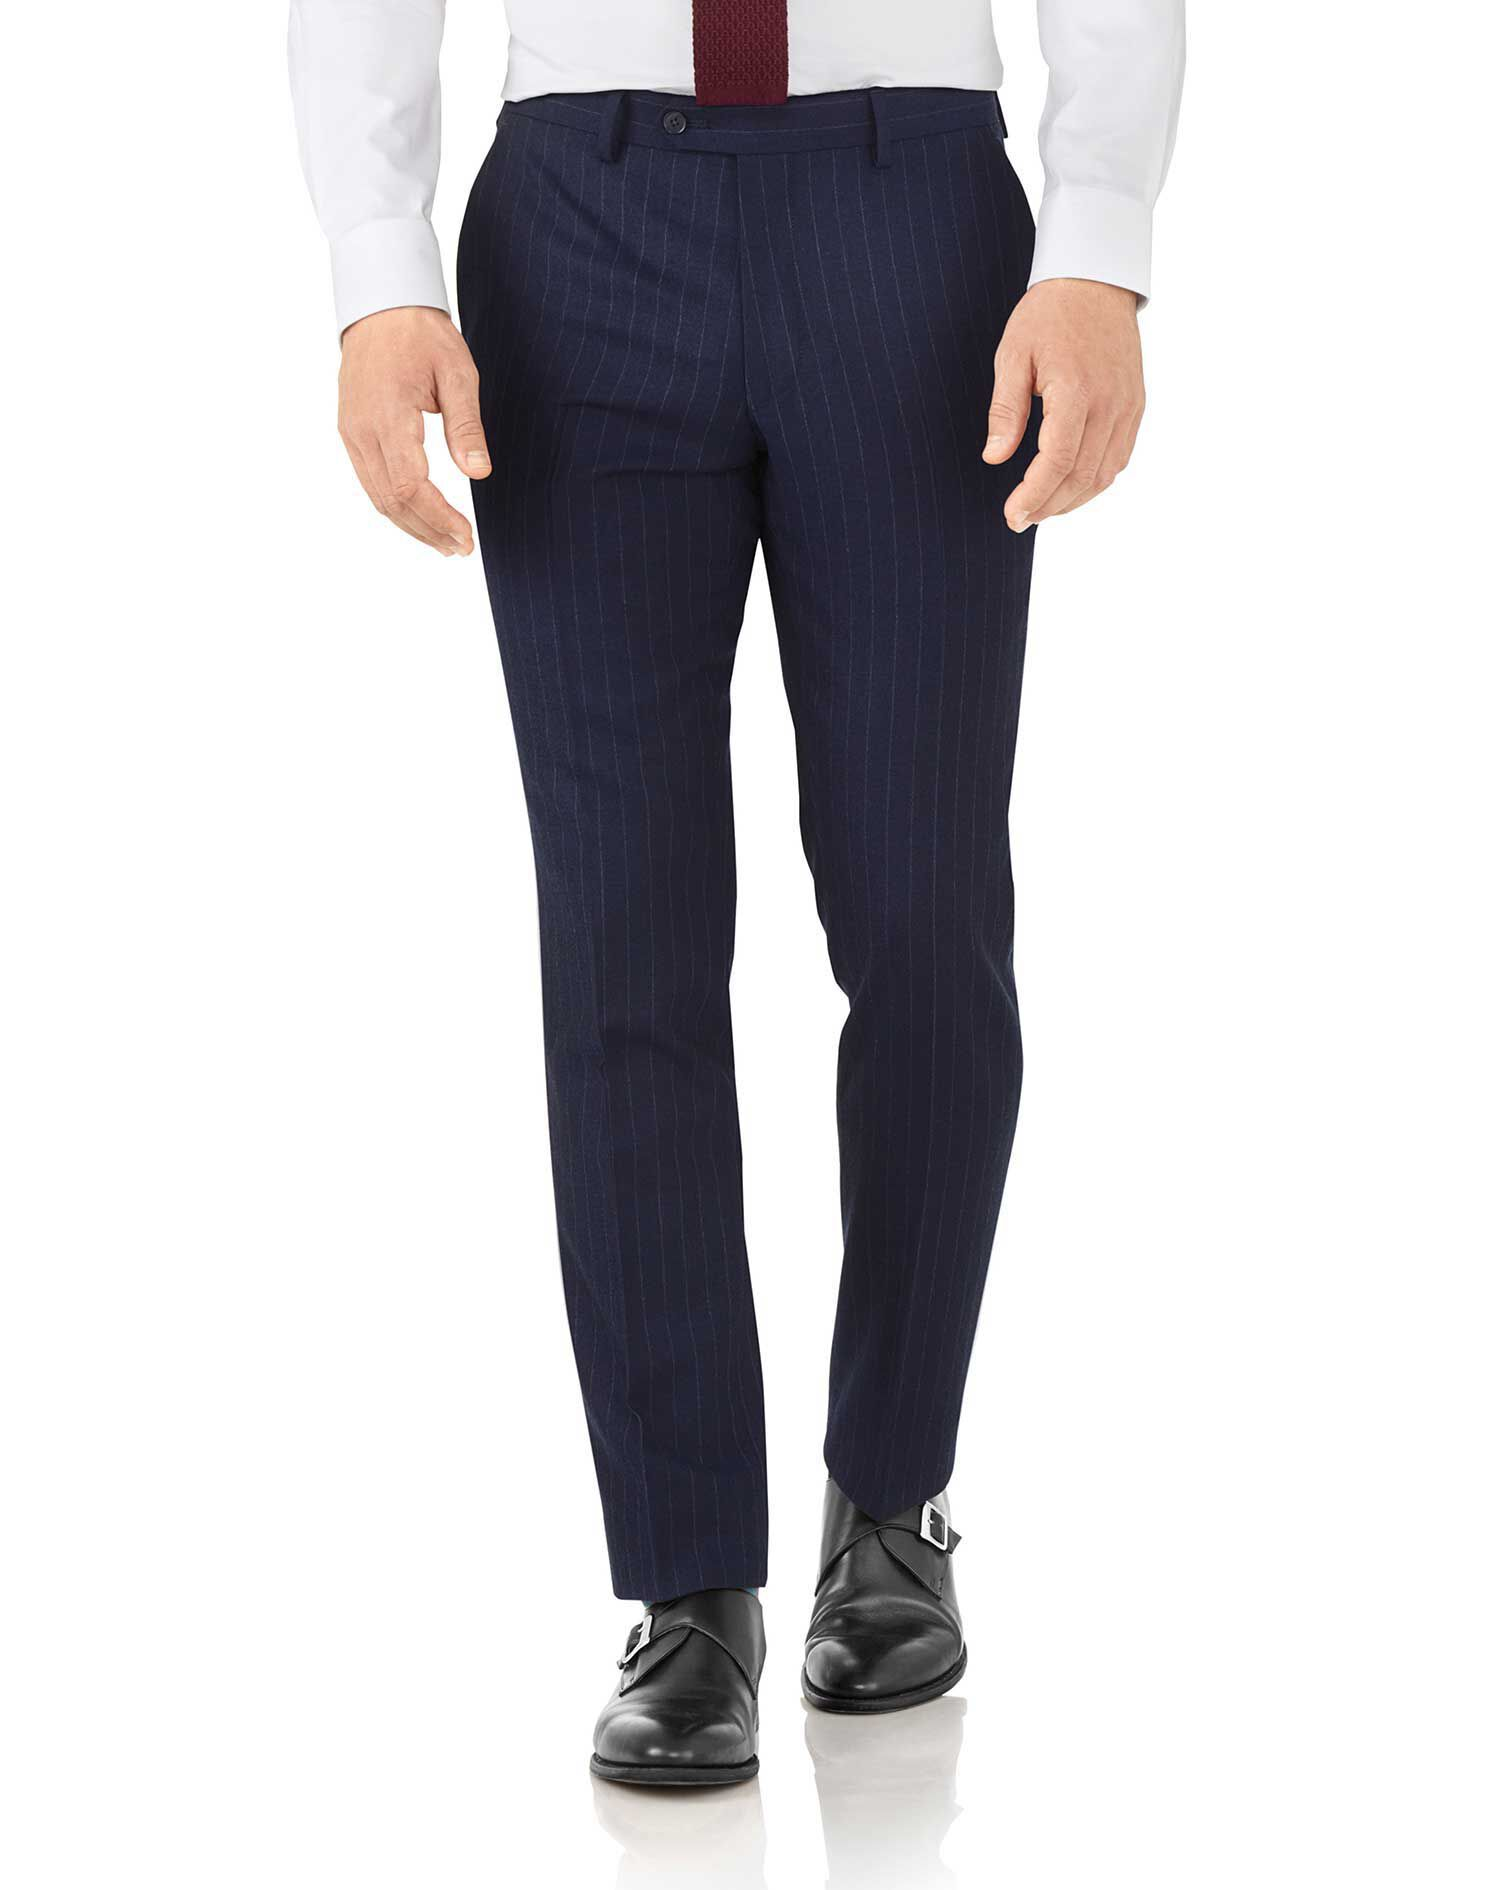 Navy Stripe Slim Fit Flannel Business Suit Trousers Size W32 L38 by Charles Tyrwhitt